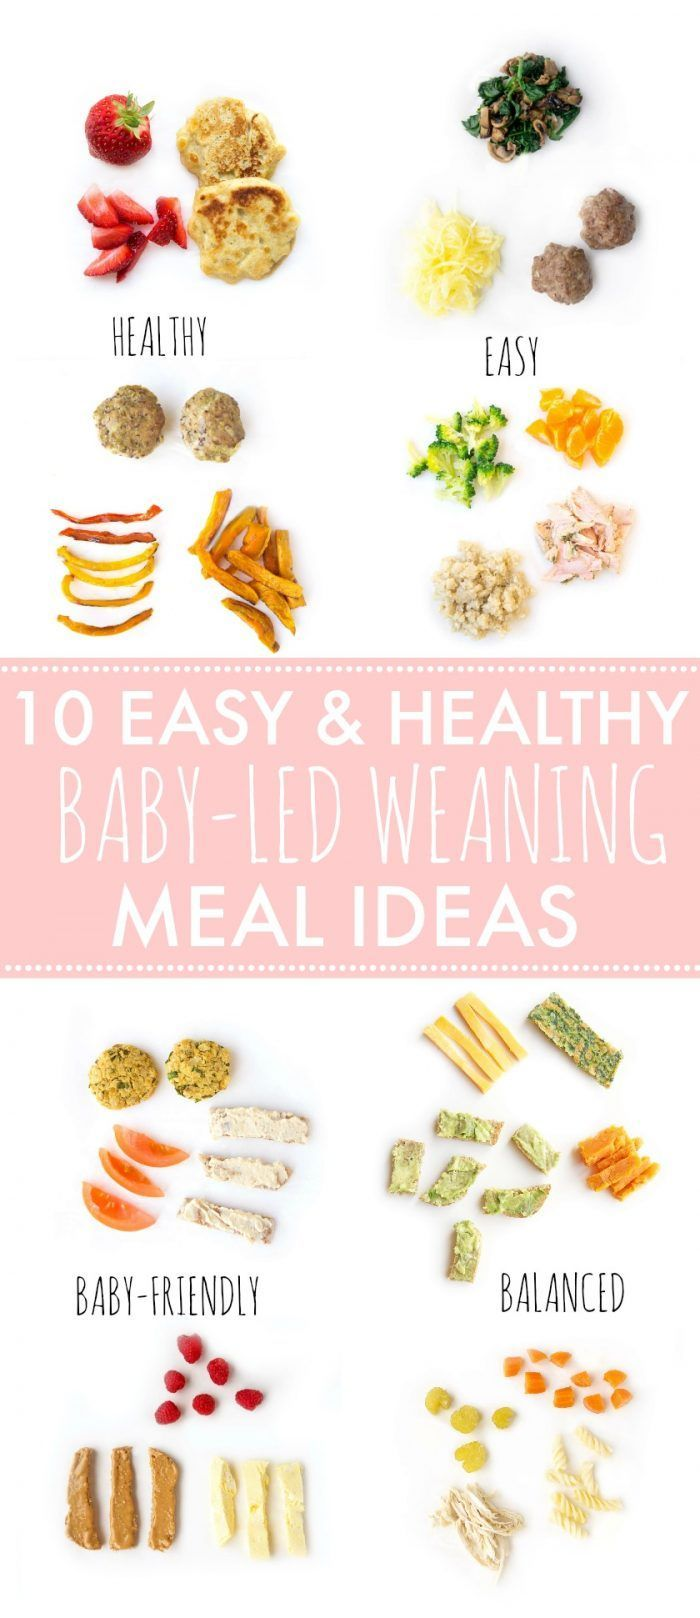 10 Easy & Healthy Baby-Led Weaning Meal Ideas | Haute & Healthy Living